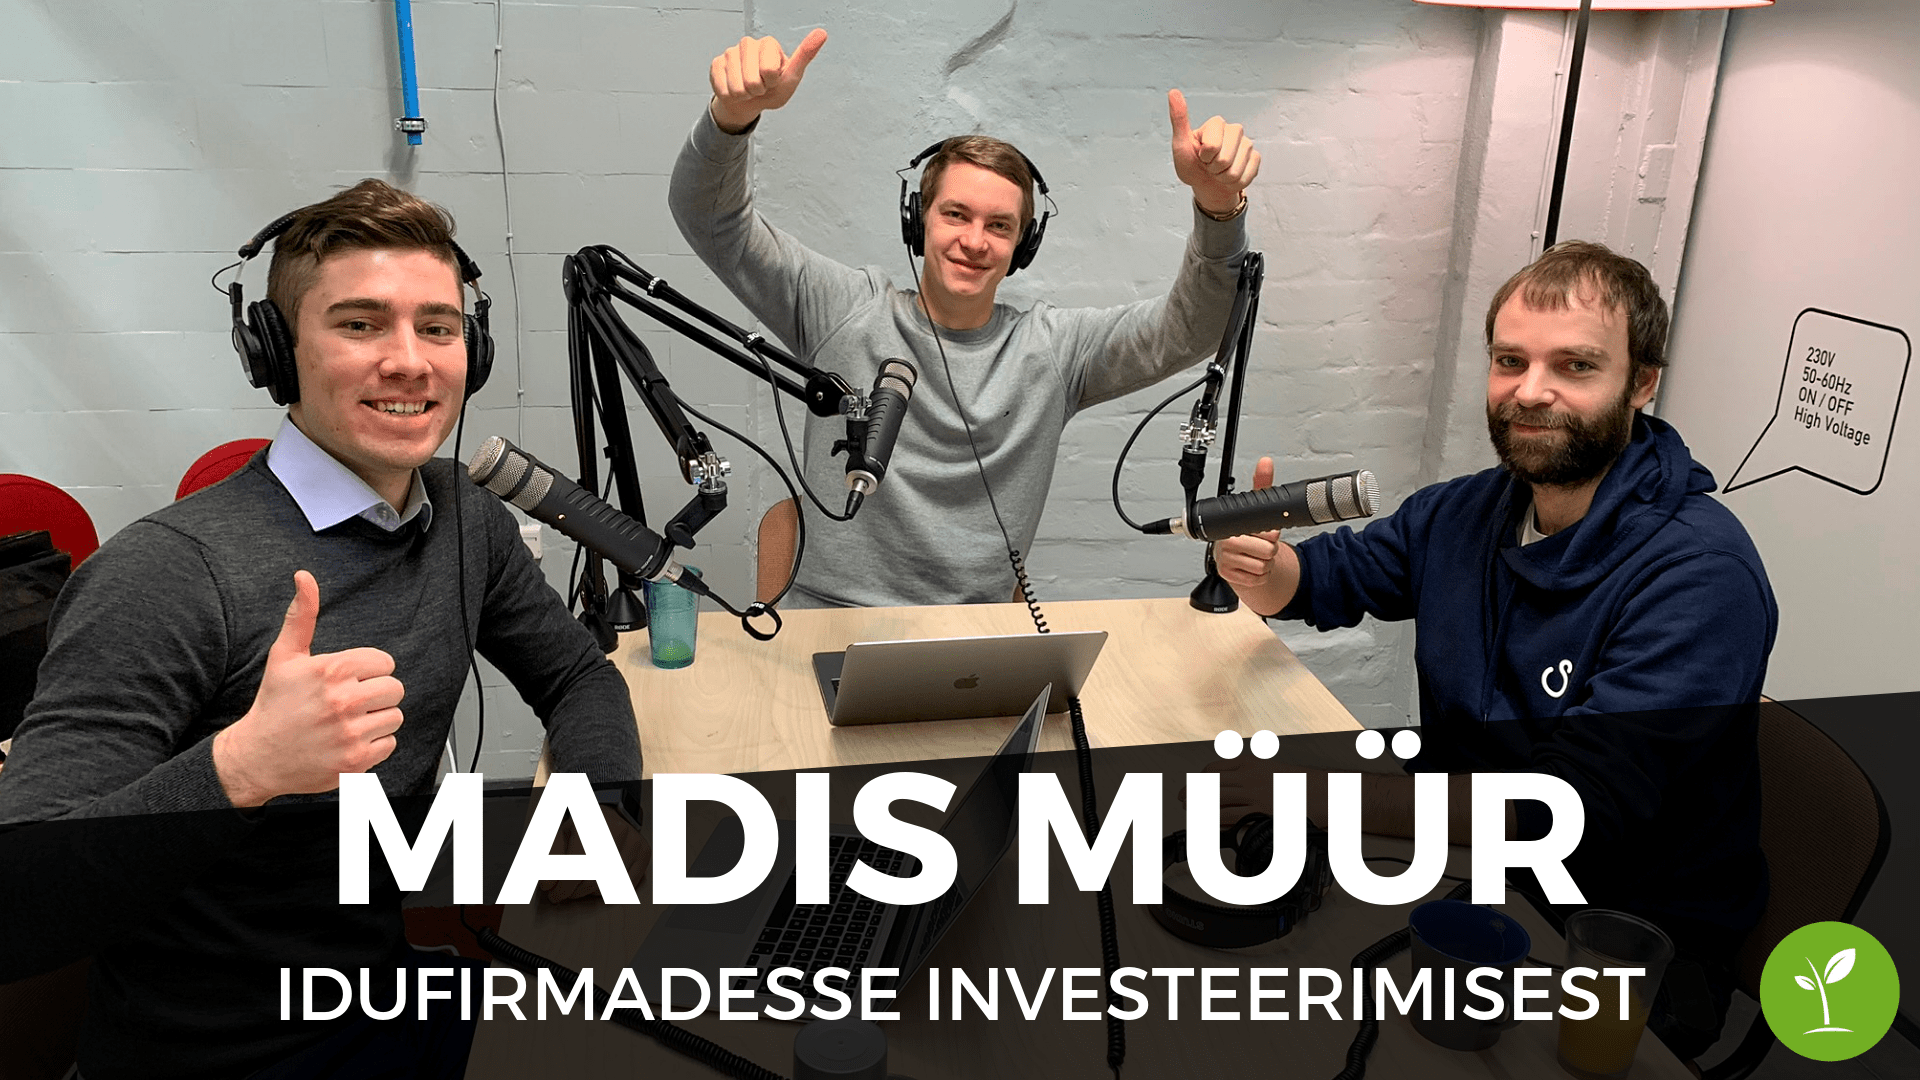 Madis Müüriga startup'desse investeerimisest